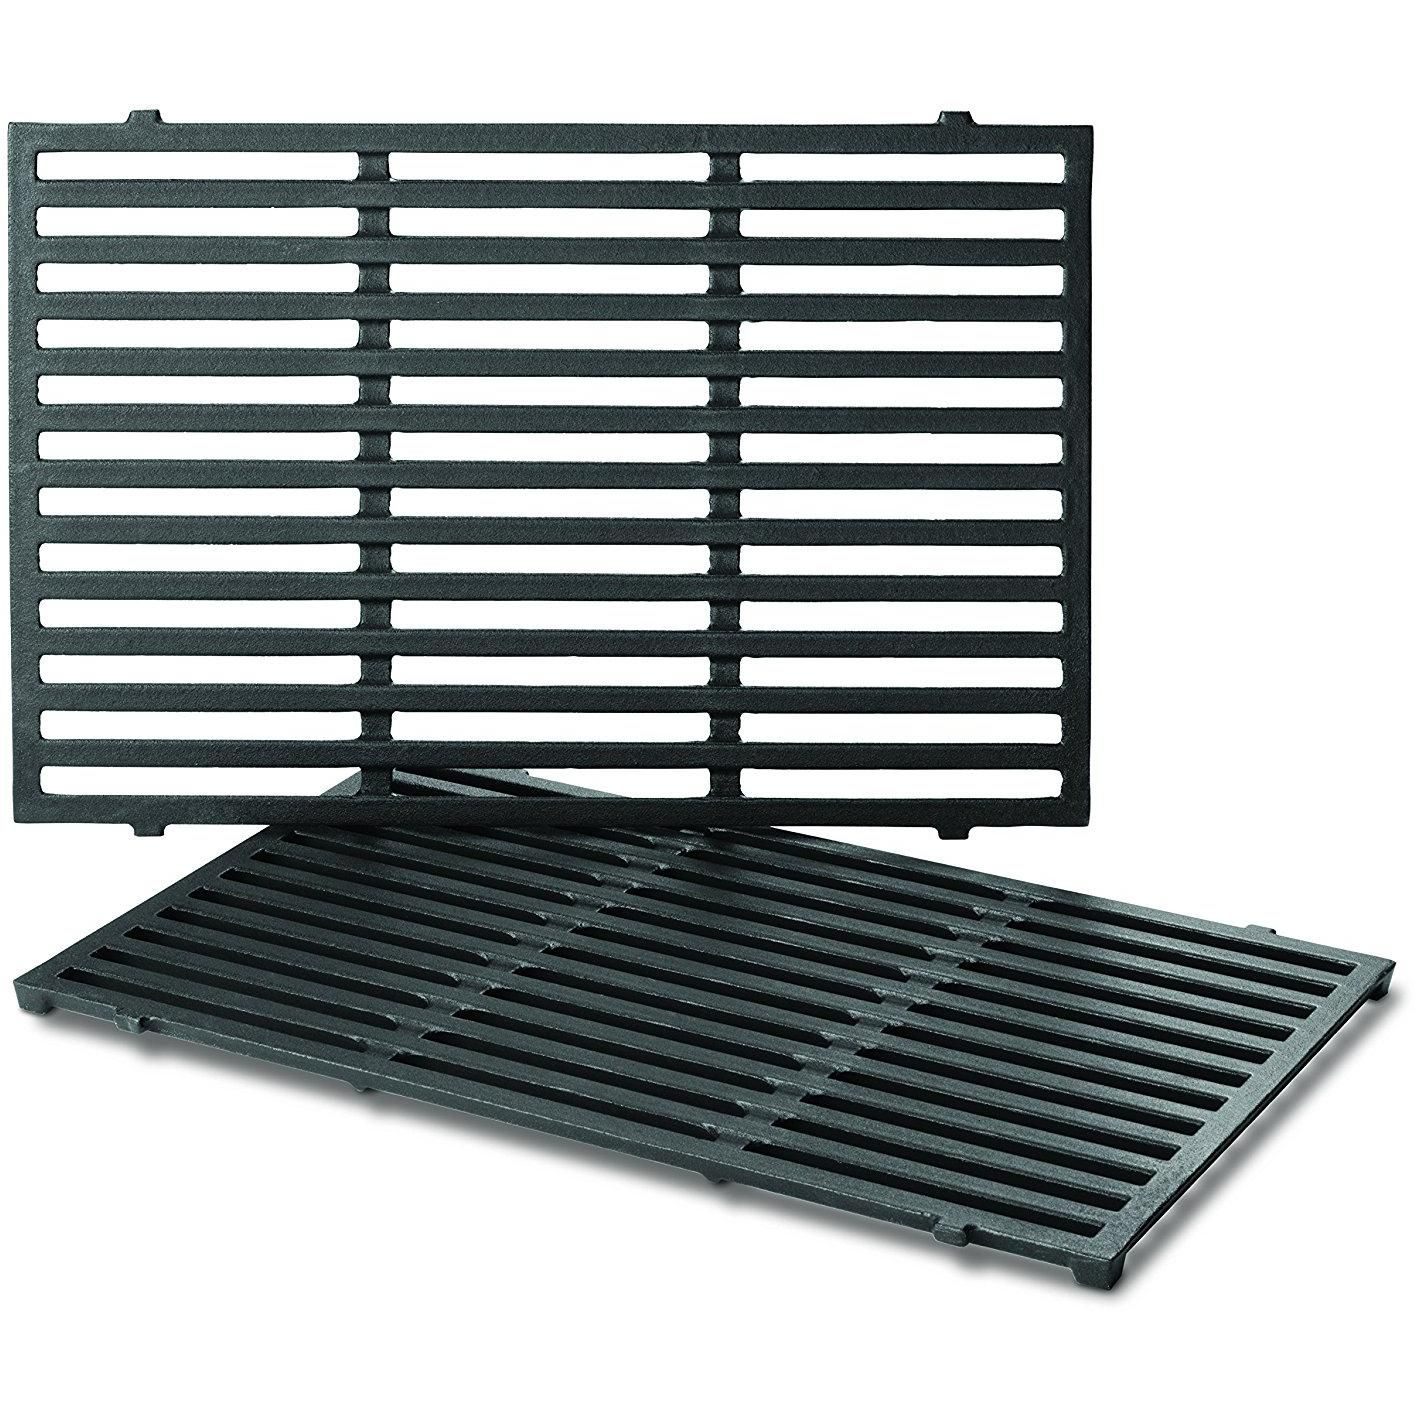 Weber 7638 Porcelain Enameled Cooking Grates For Genesis B Spirit 300 Series Gas Grills Products In 2019 Cast Iron Cooking Grilling Cooking